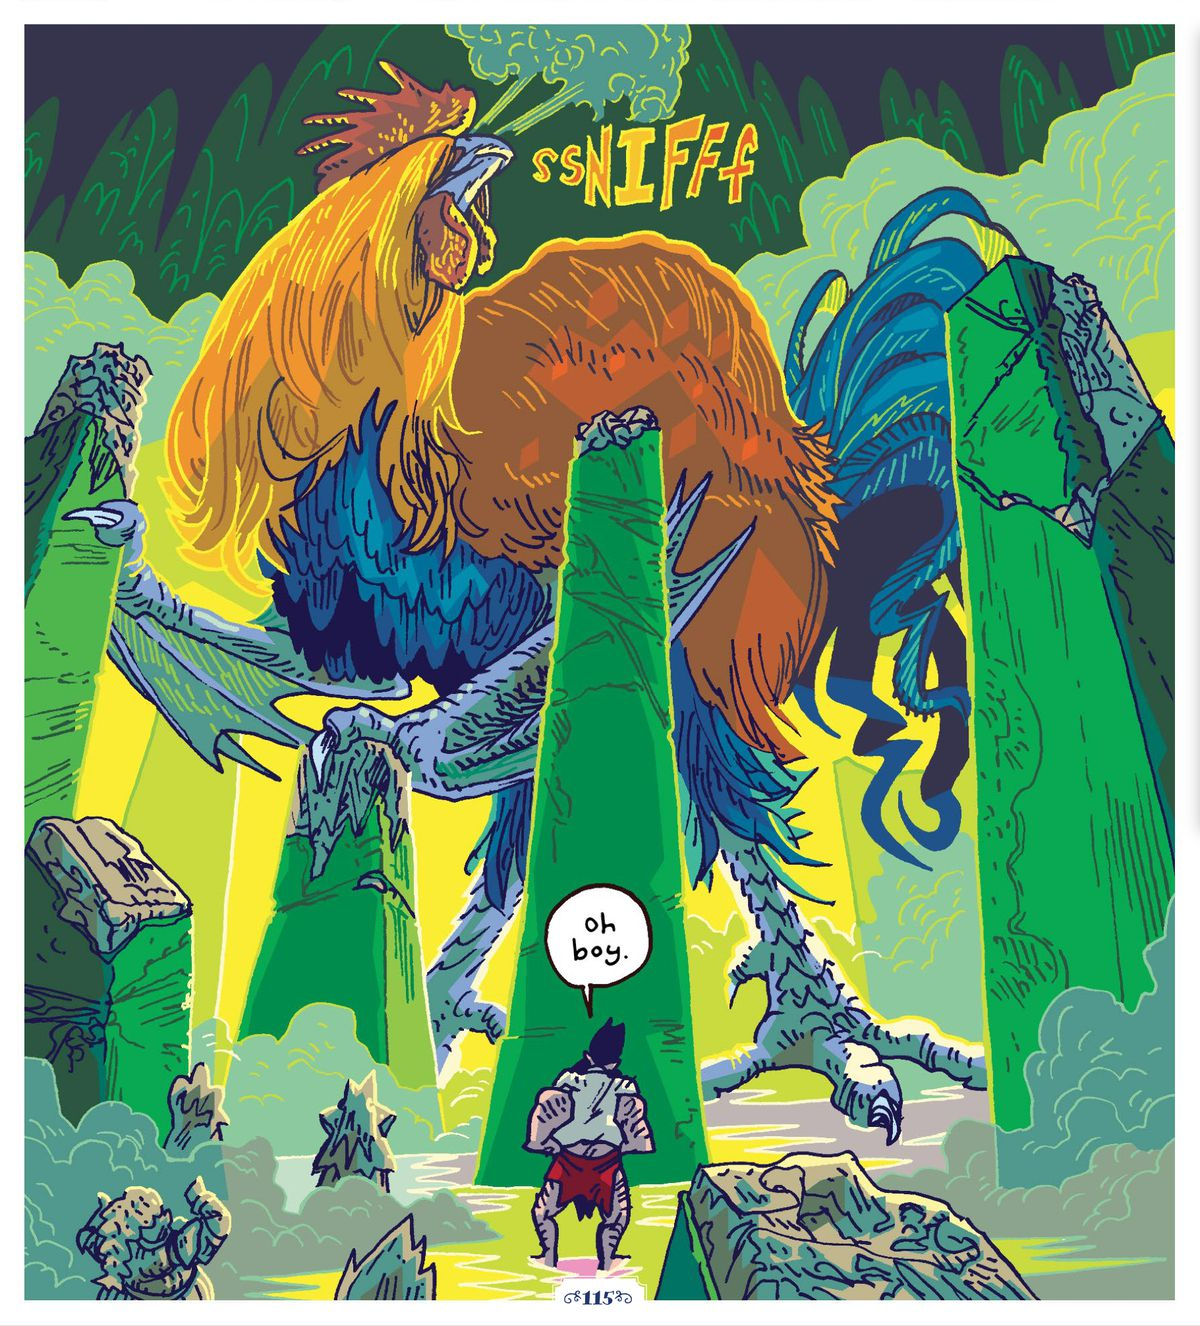 A cockatrice — basically a four-storey tall rooster with taloned and bat-winged arms — sniffs the air of an underground ruin, searching by scent for She Dwarf and Hack Battler, in The Savage Beard of She-Dwarf, Oni Press (2020).